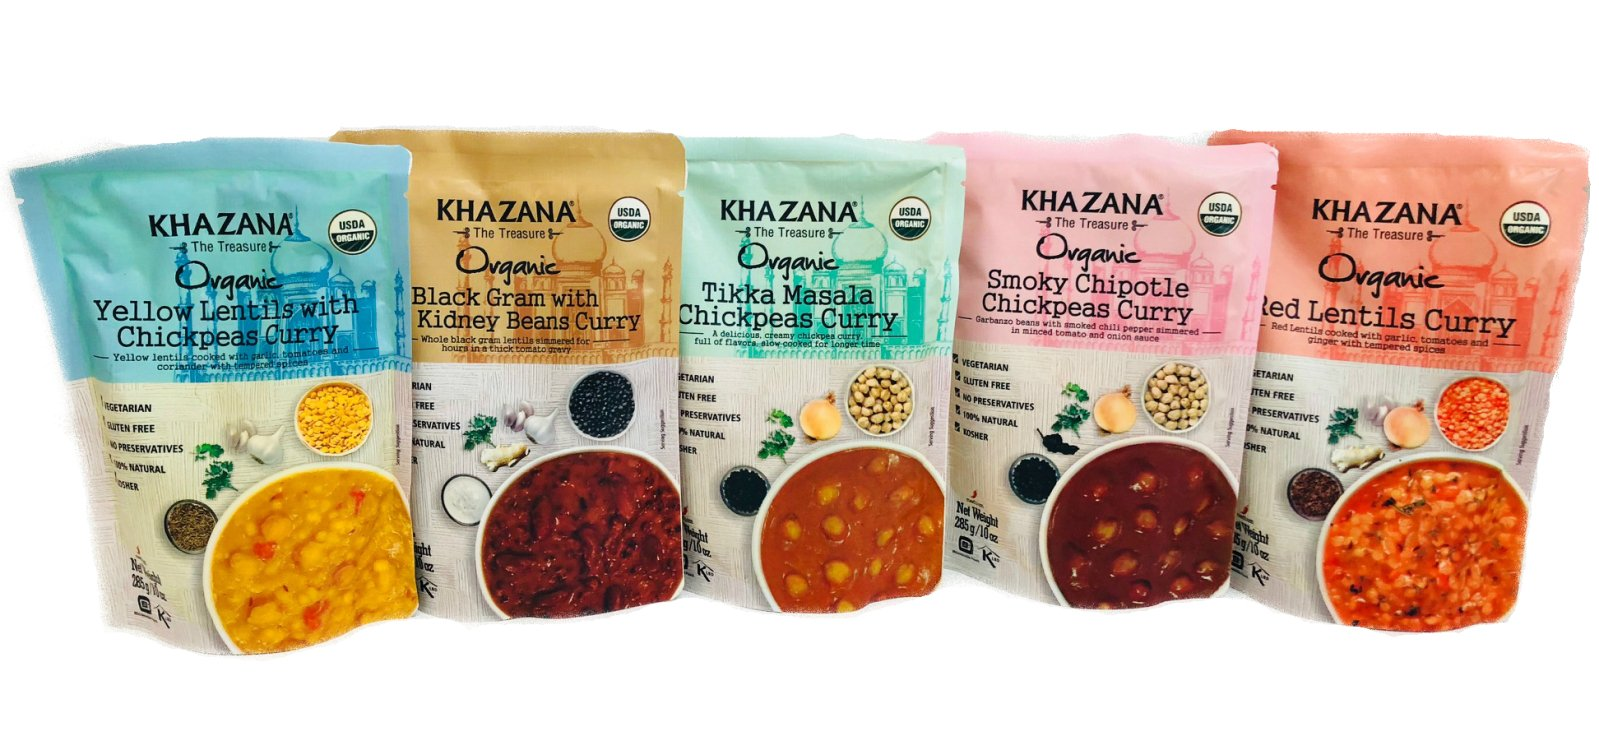 Khazana Gourmet Indian Food Ready to Eat Packaged Meals |USDA-Organic/Vegan/KETO|- CURRY VARIETY PACK • 10oz(5 Pack) • [Prepared Microwave Dishes, Healthy & Tasty Bite of Indian Kitchen, MRE]   by Khazana